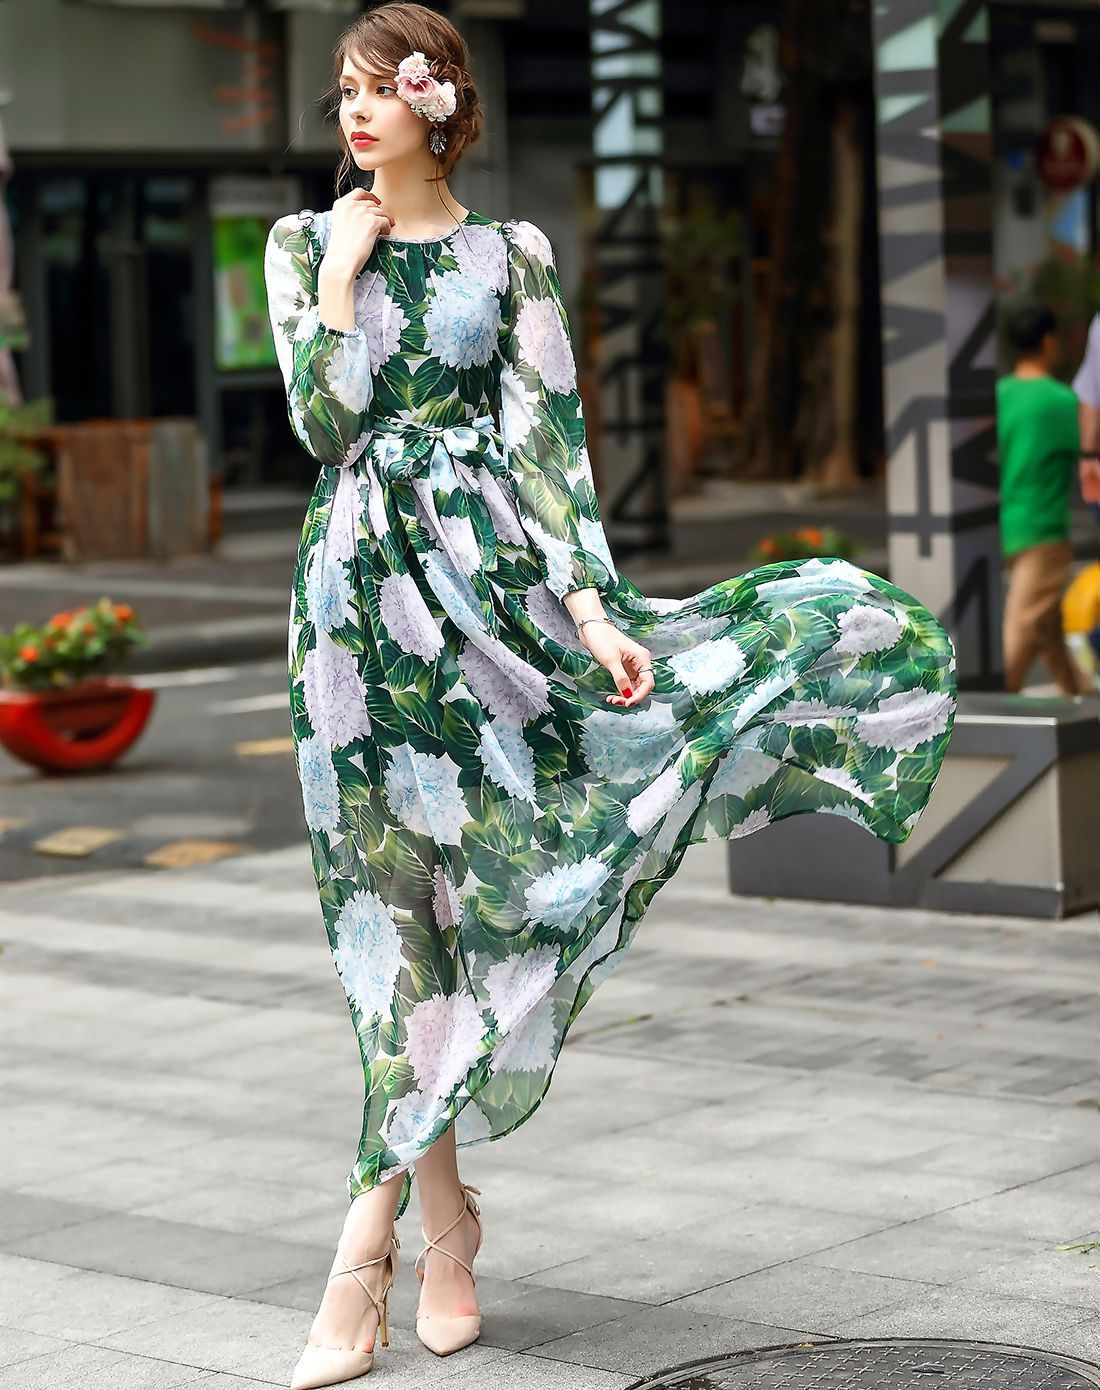 5adf7f3145 #VIPme Green Floral Printed Long Sleeve High waist Chiffon Midi Dress ❤ Get  more outfit ideas and style inspiration from fashion designers at VIPme.com.